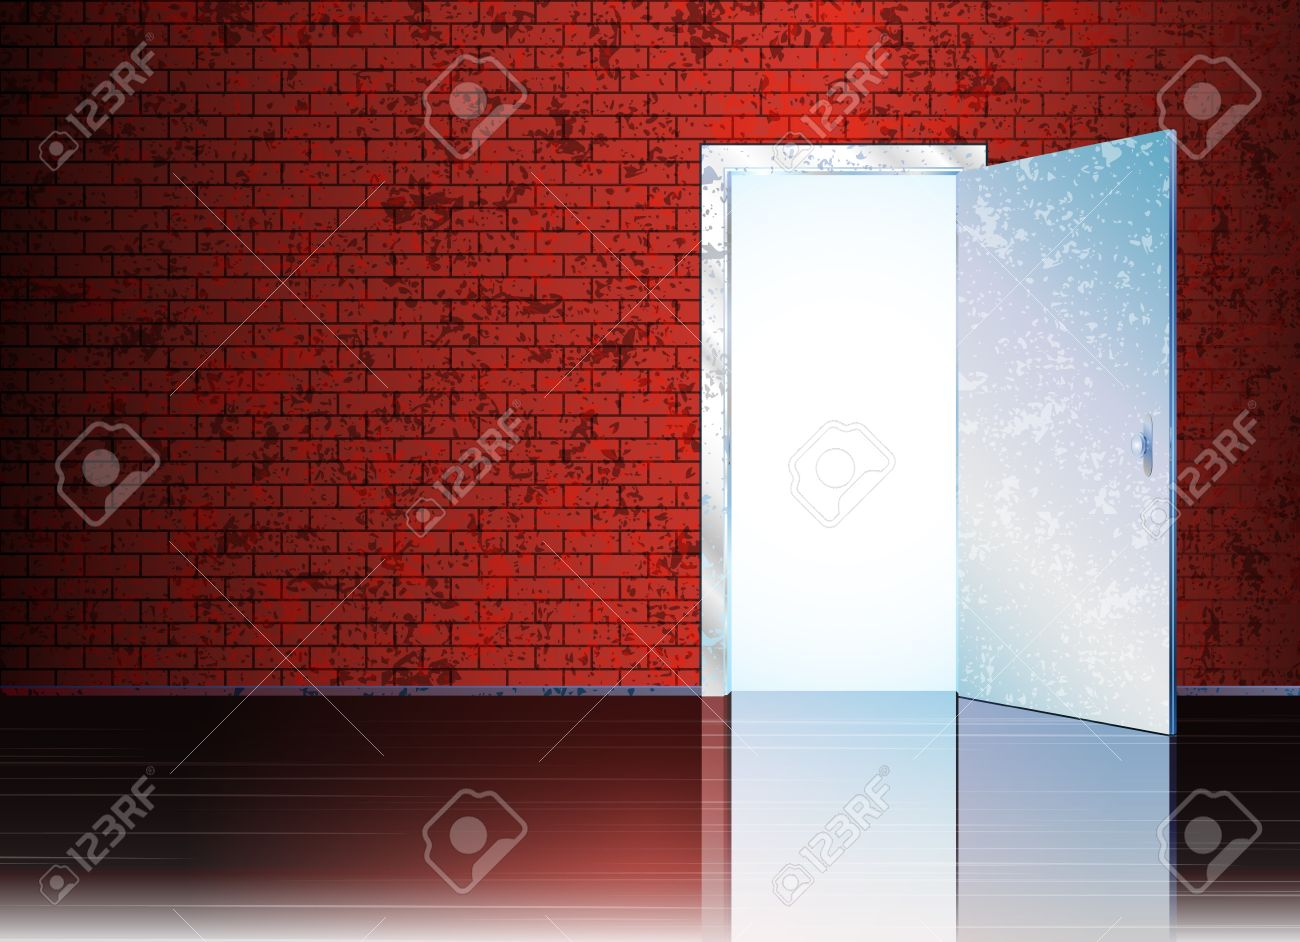 Vector illustration with open door and empty space behind it for your symbol or text. Stock Vector - 8774162